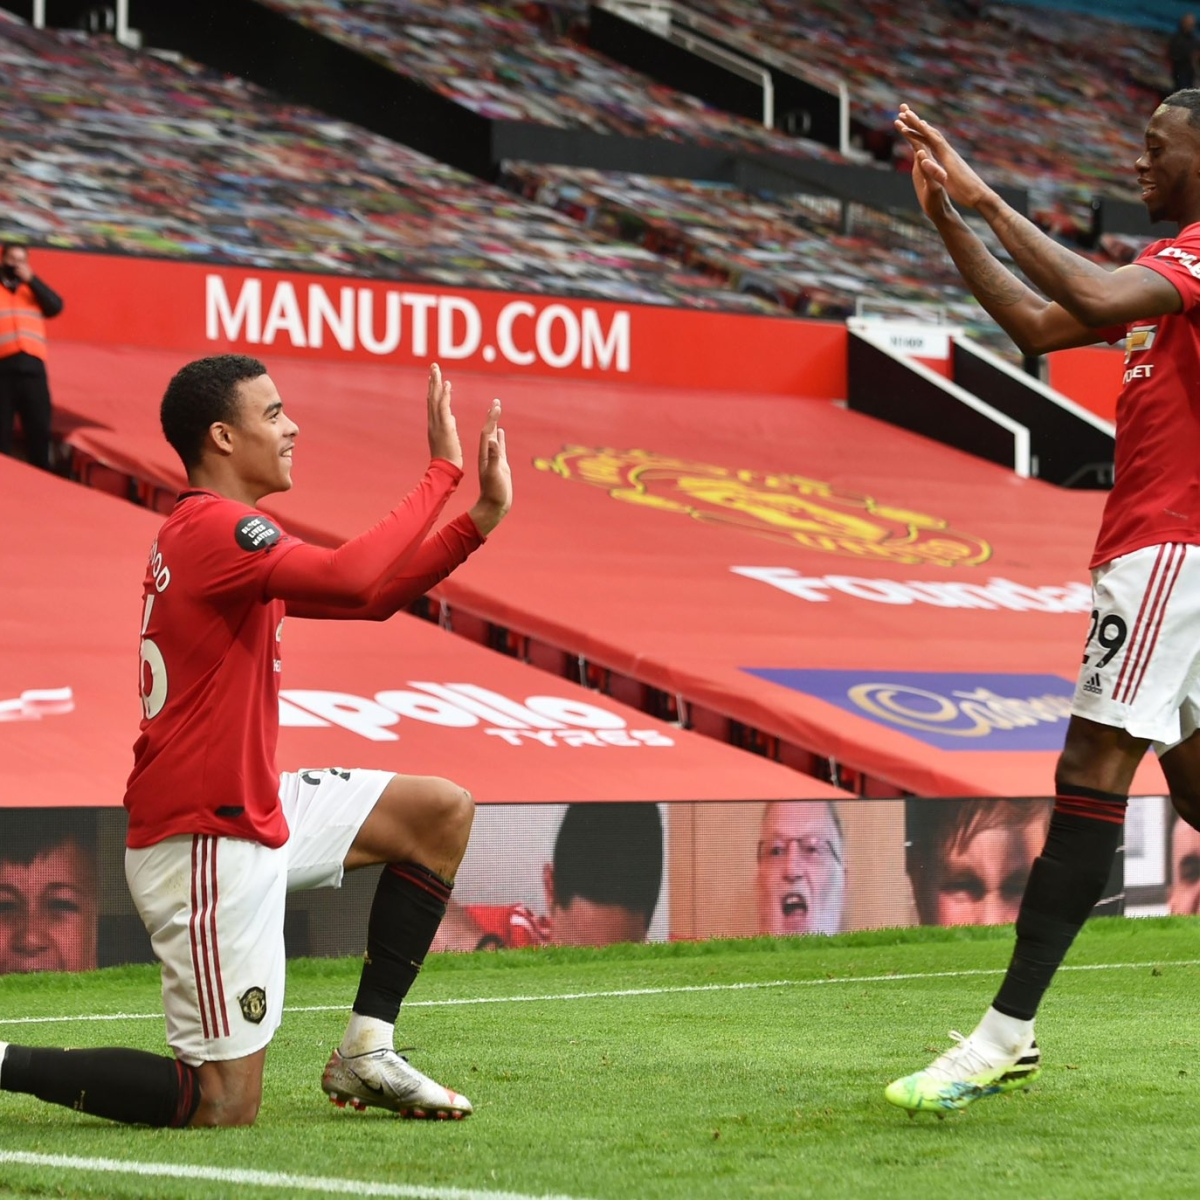 Watch Premier League Highlights: Mason Greenwood's double helps Manchester United spank Bournemouth 5-2